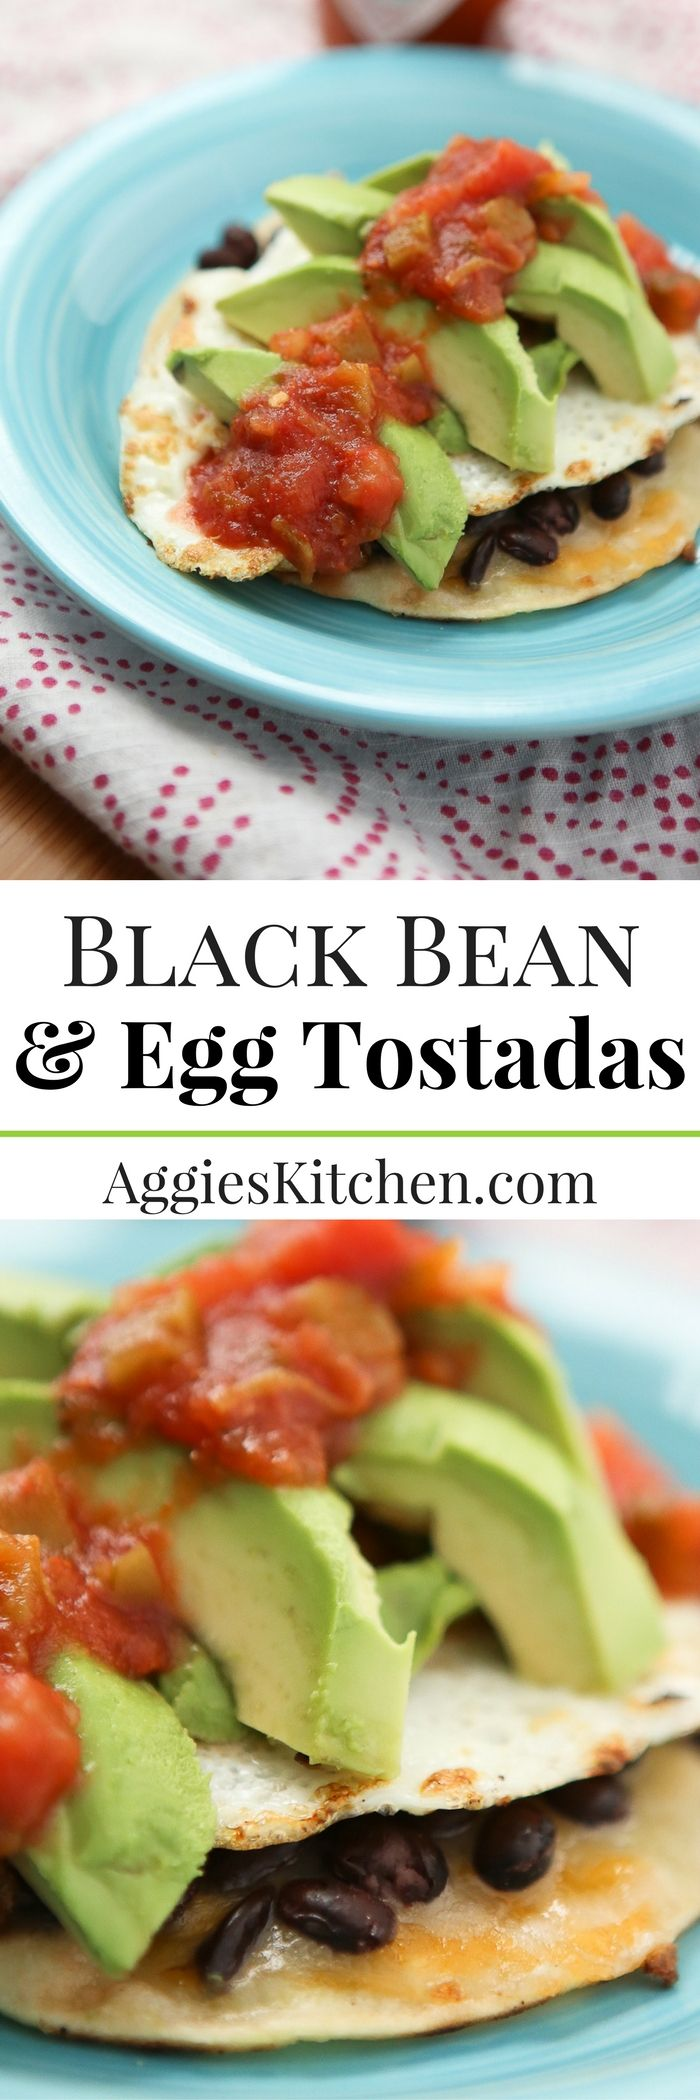 Change up your egg and toast breakfast (or dinner) routine with these simple & healthy Black Bean and Egg Tostadas. Just a few staple ingredients!